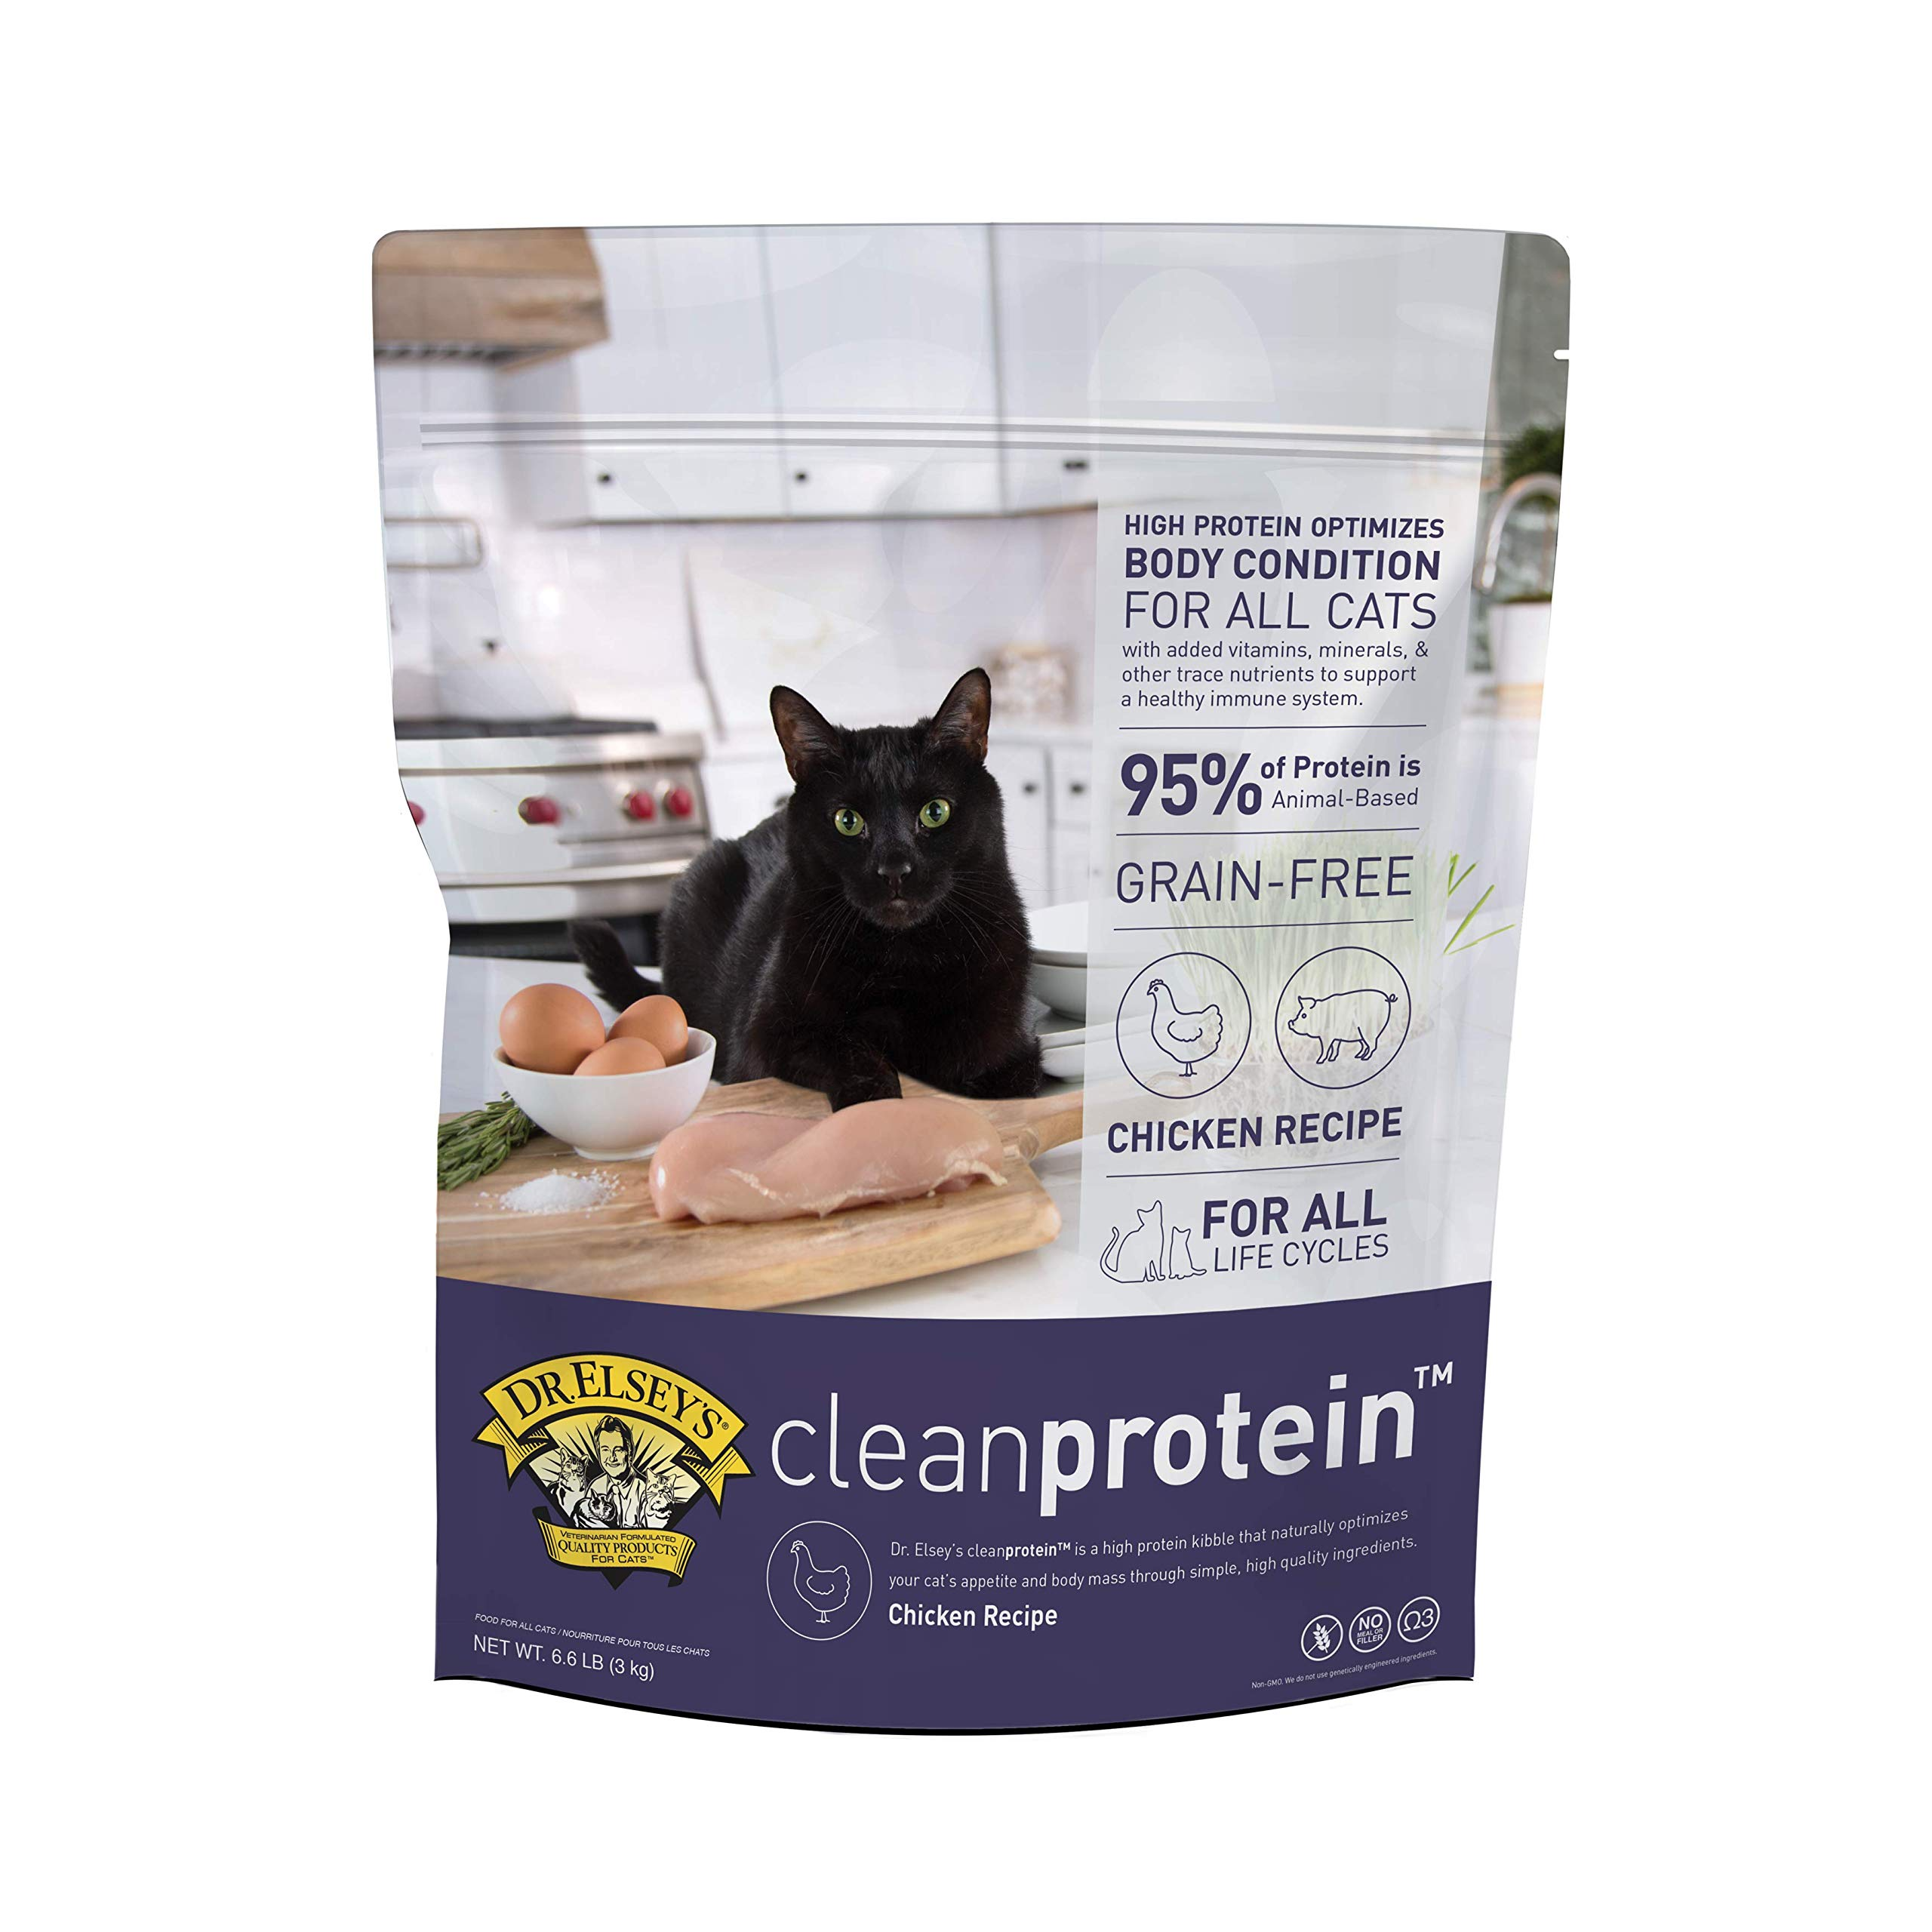 Dr. Elsey's Cleanprotein Chicken Formula Dry Cat Food, 6.6 Lb by Dr. Elsey's